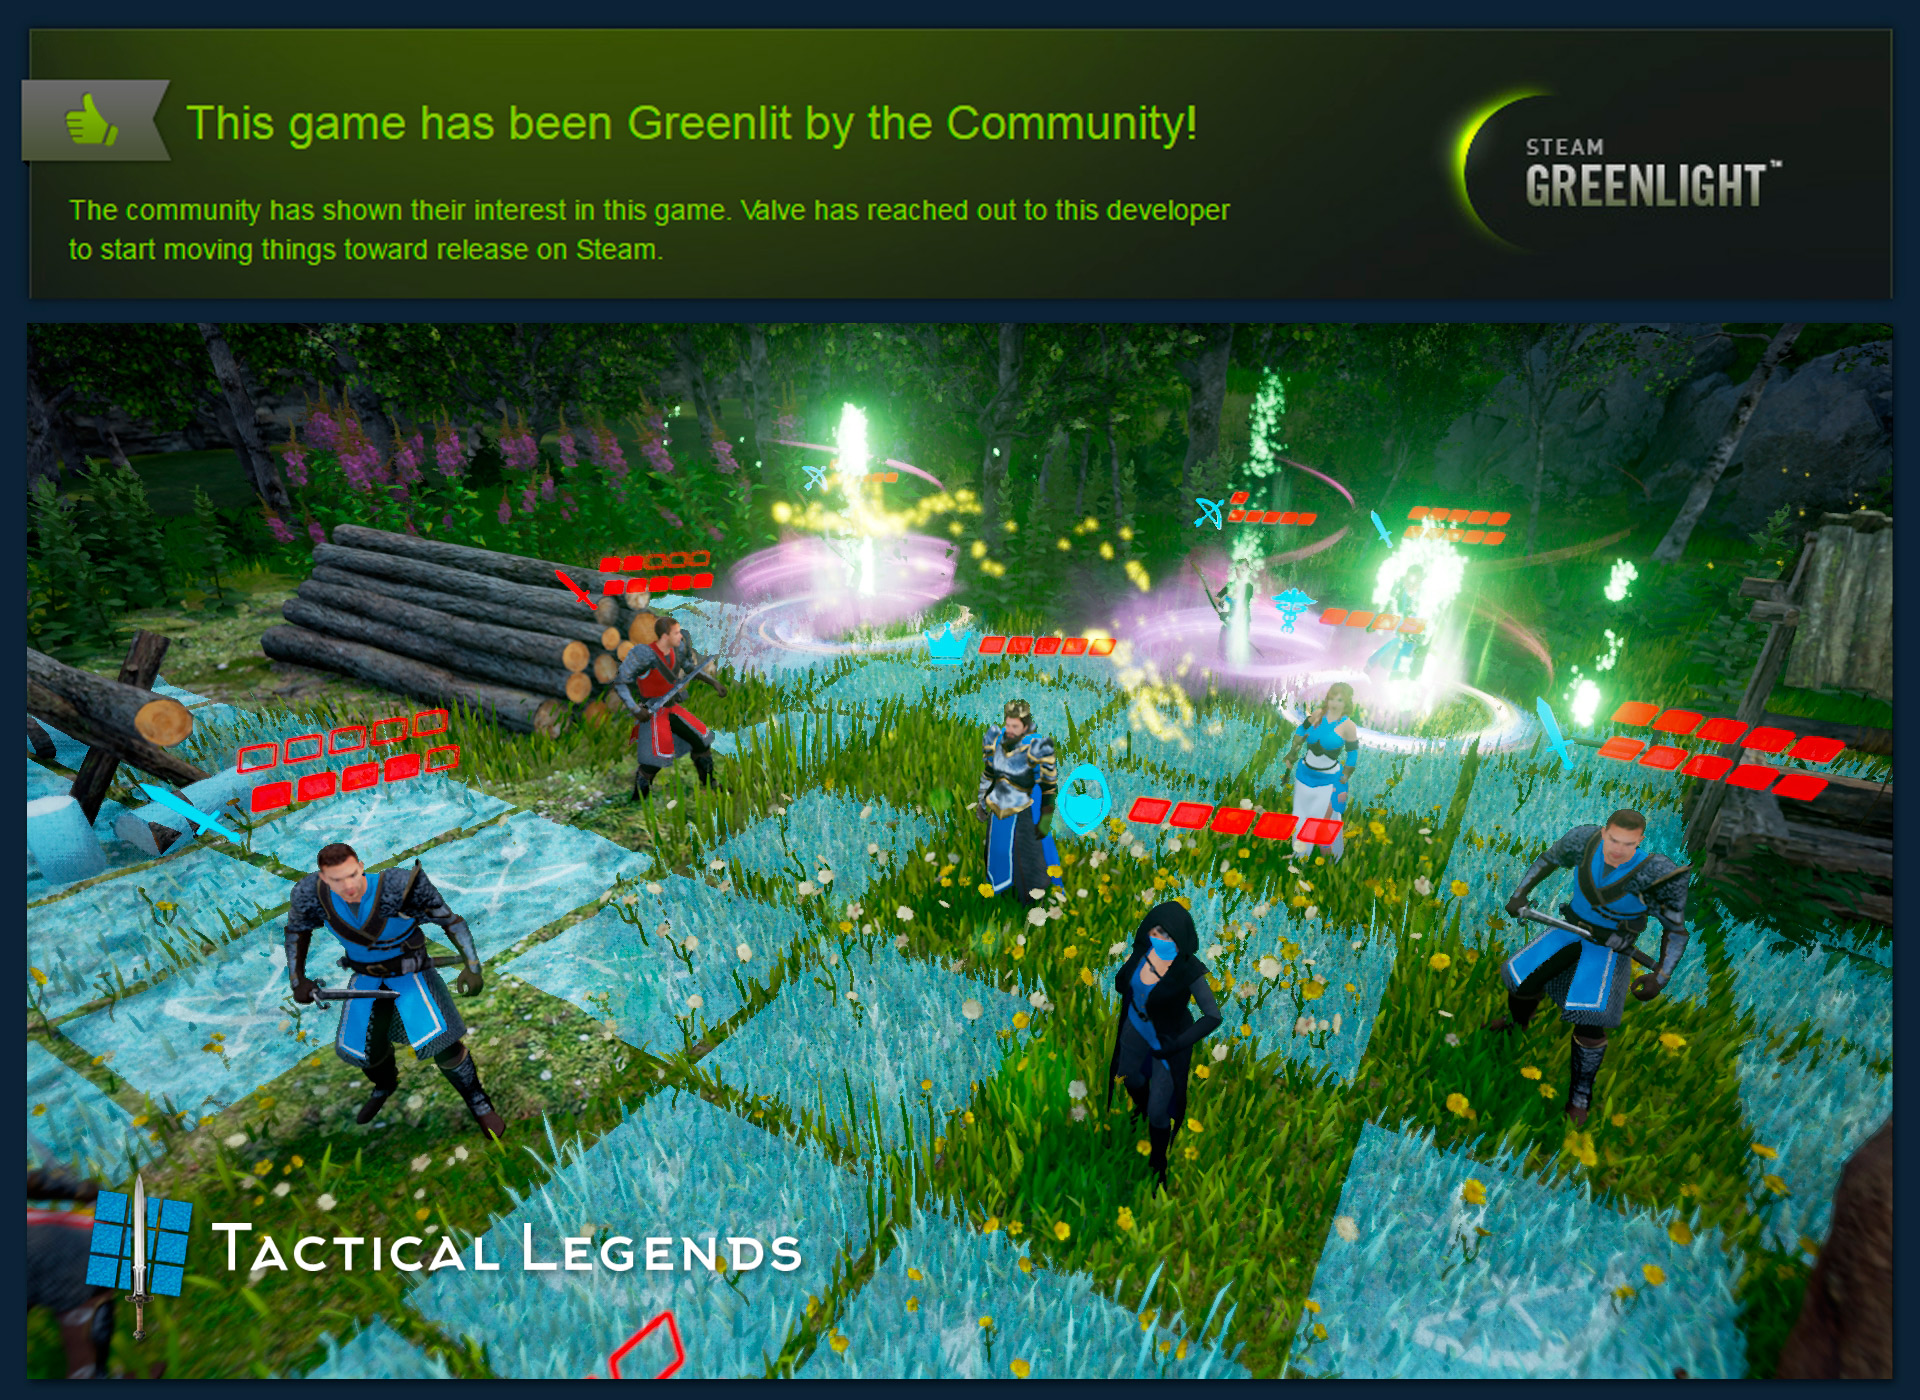 TACTICAL LEGENDS HAS BEEN GREENLIT!